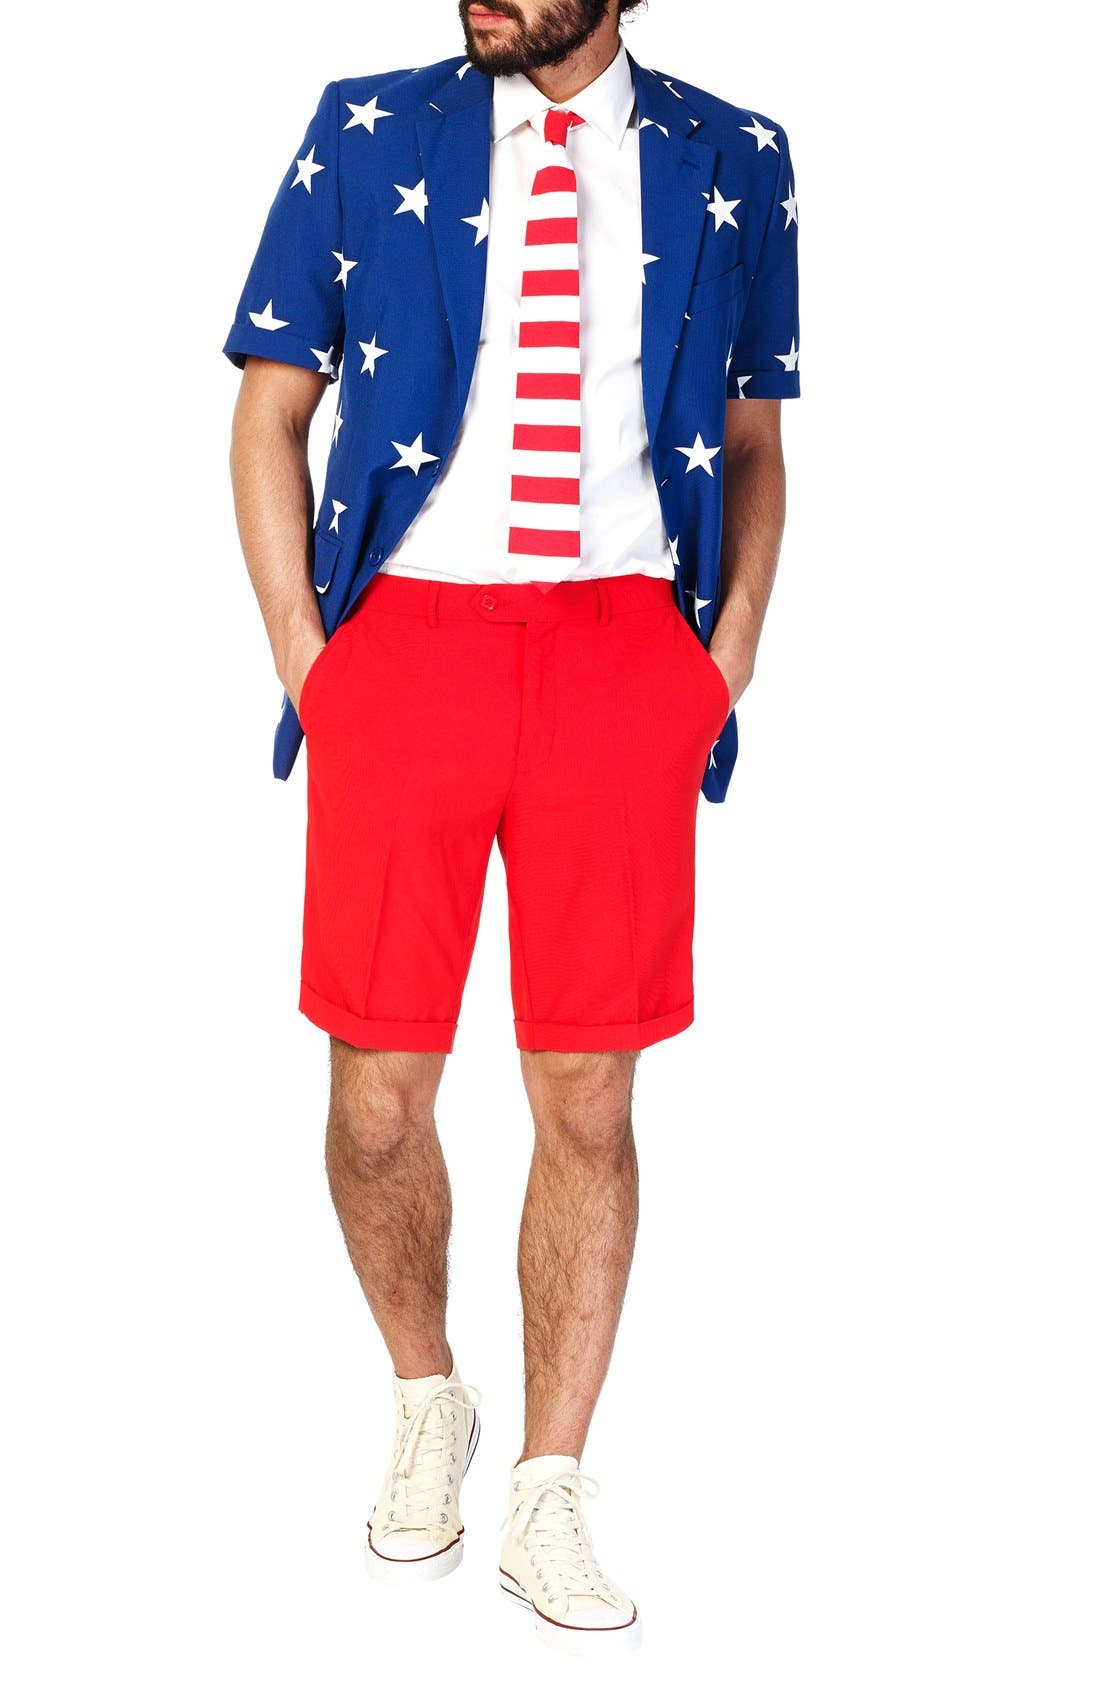 'Summer Stars & Stripes' Trim Fit Short Suit with Tie,                             Main thumbnail 1, color,                             Blue/ Red/ White